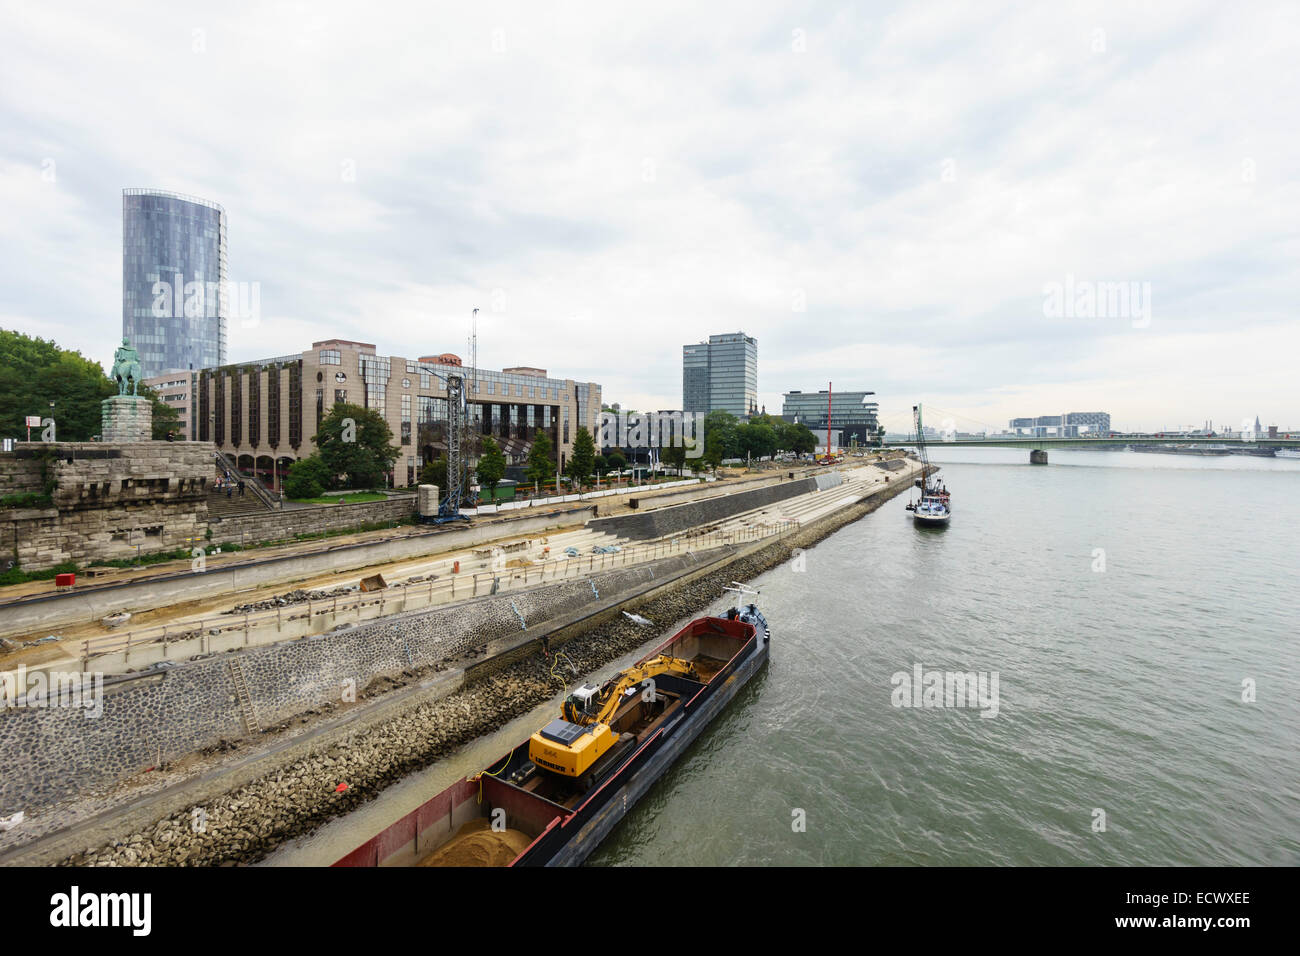 Construction work strengthening the banks of the Rhine river in Cologne, Germany Stock Photo